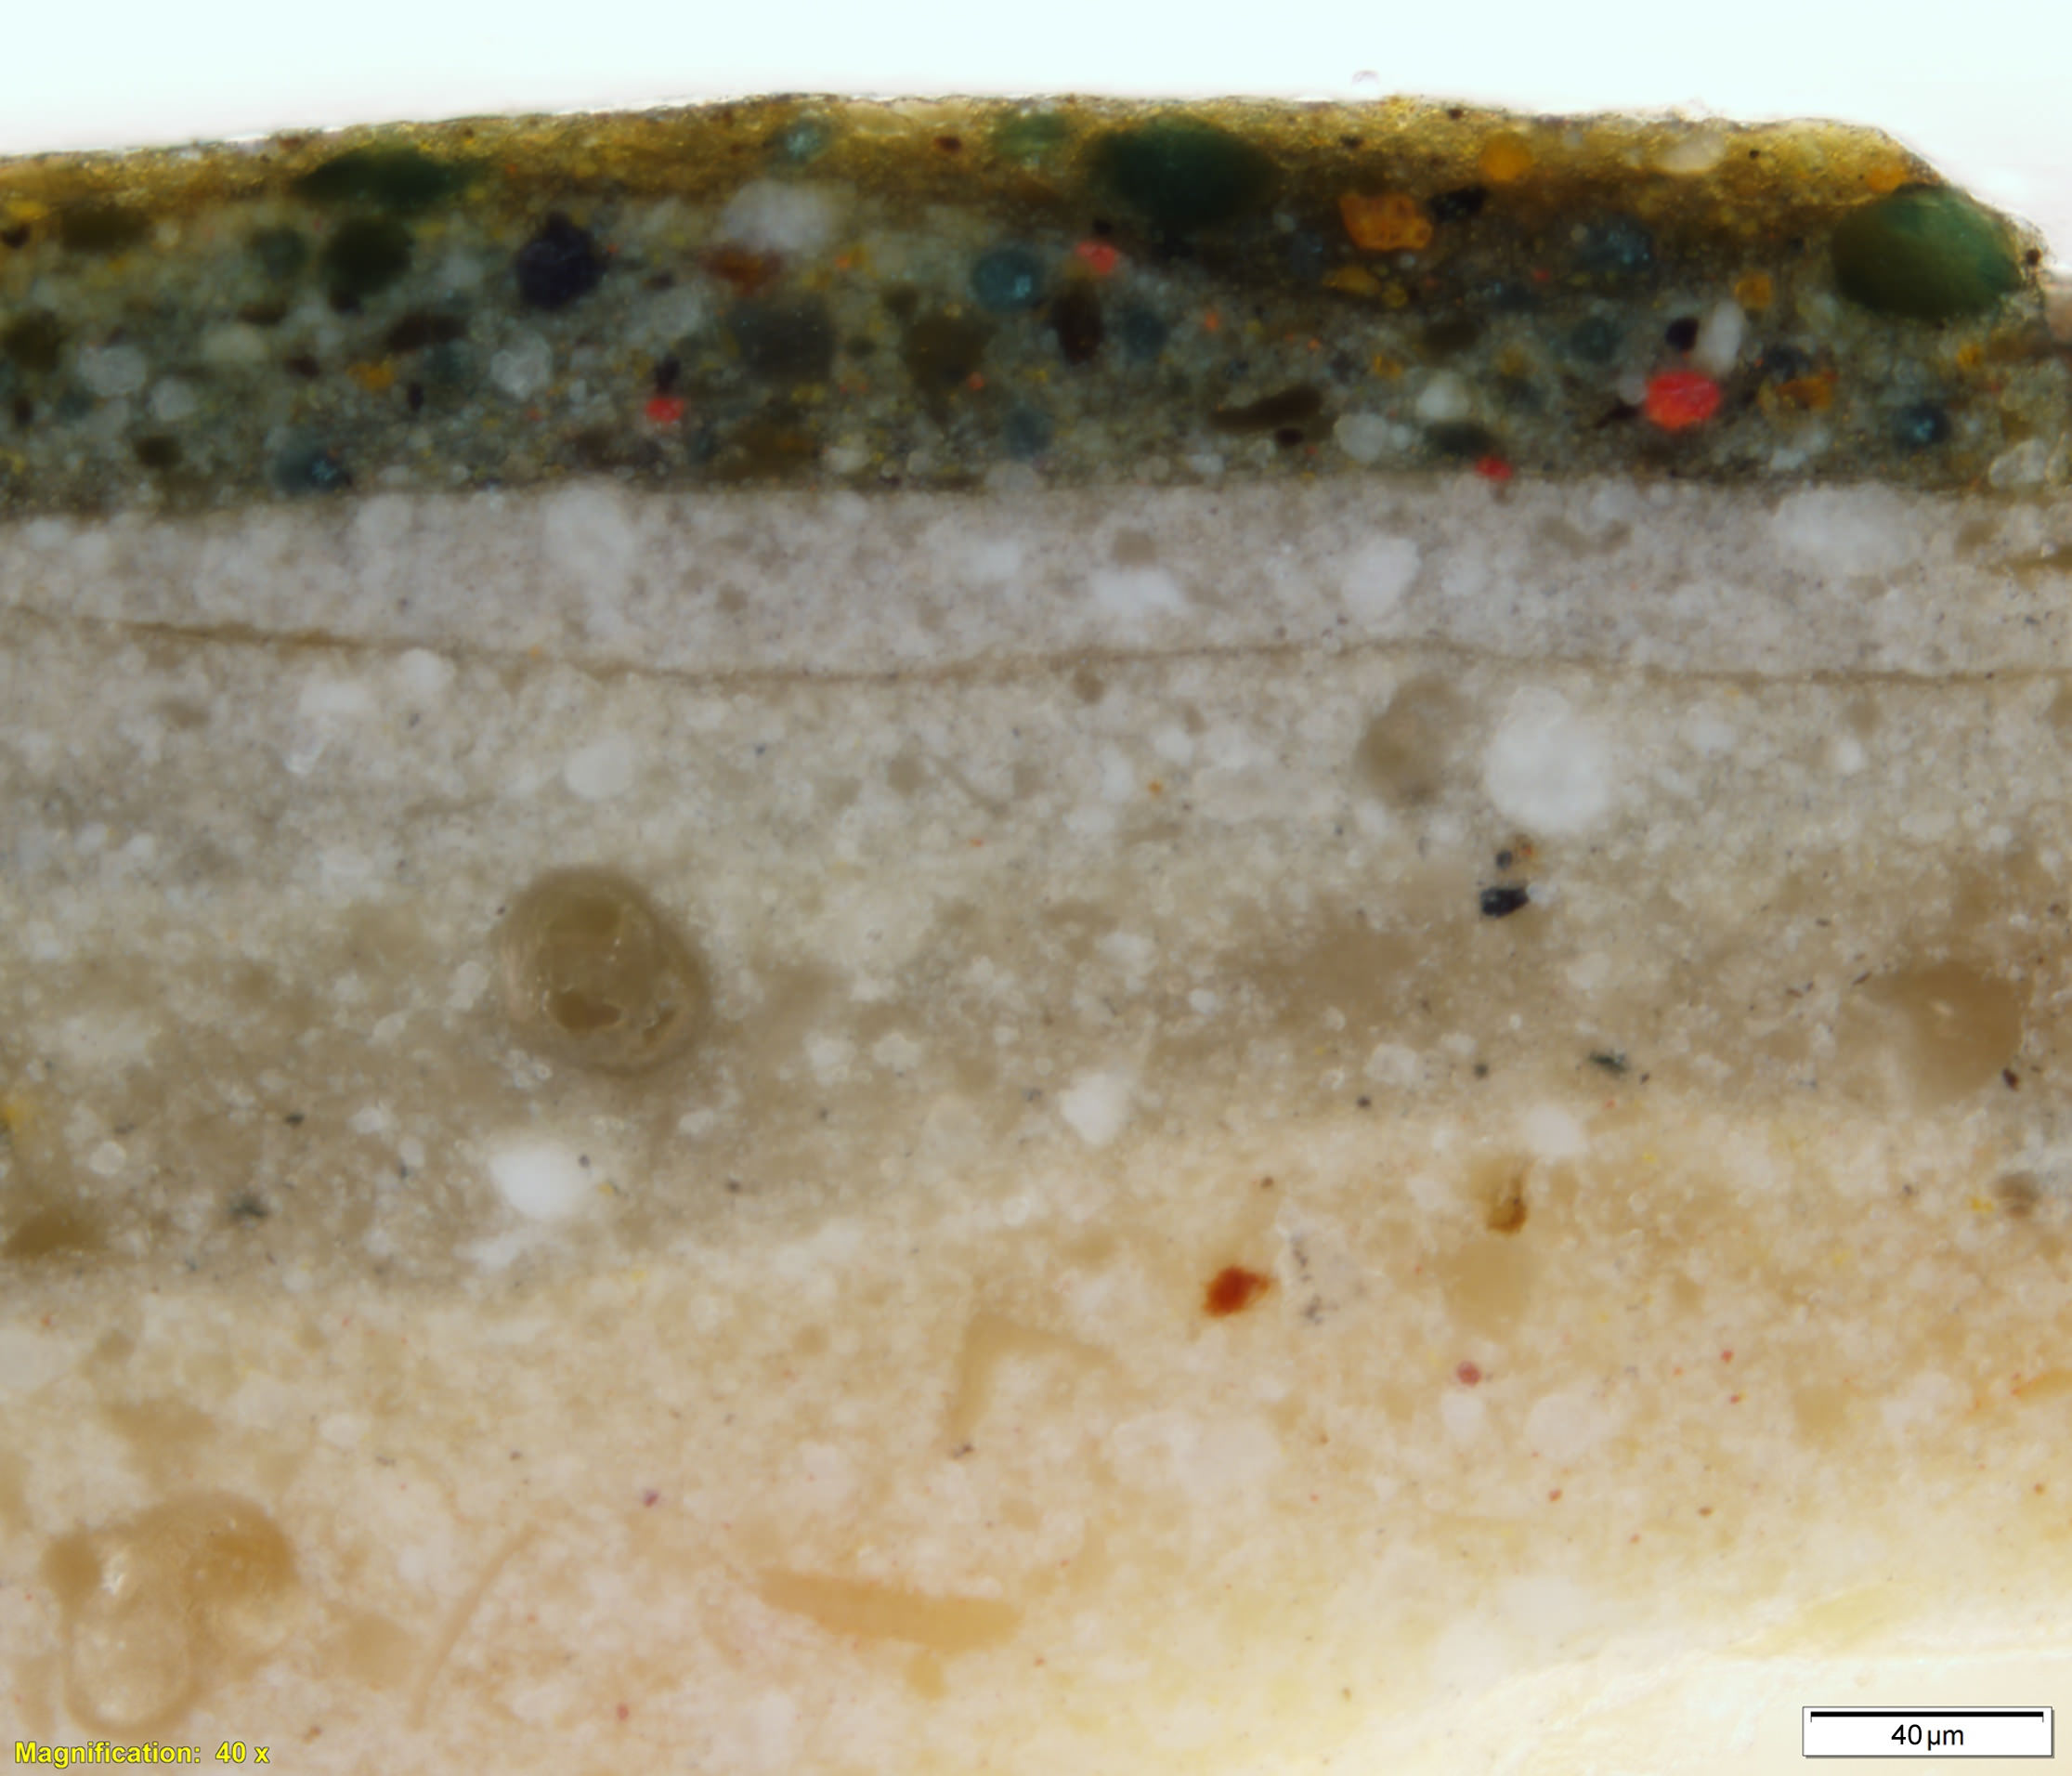 Cross-section from an area of grass